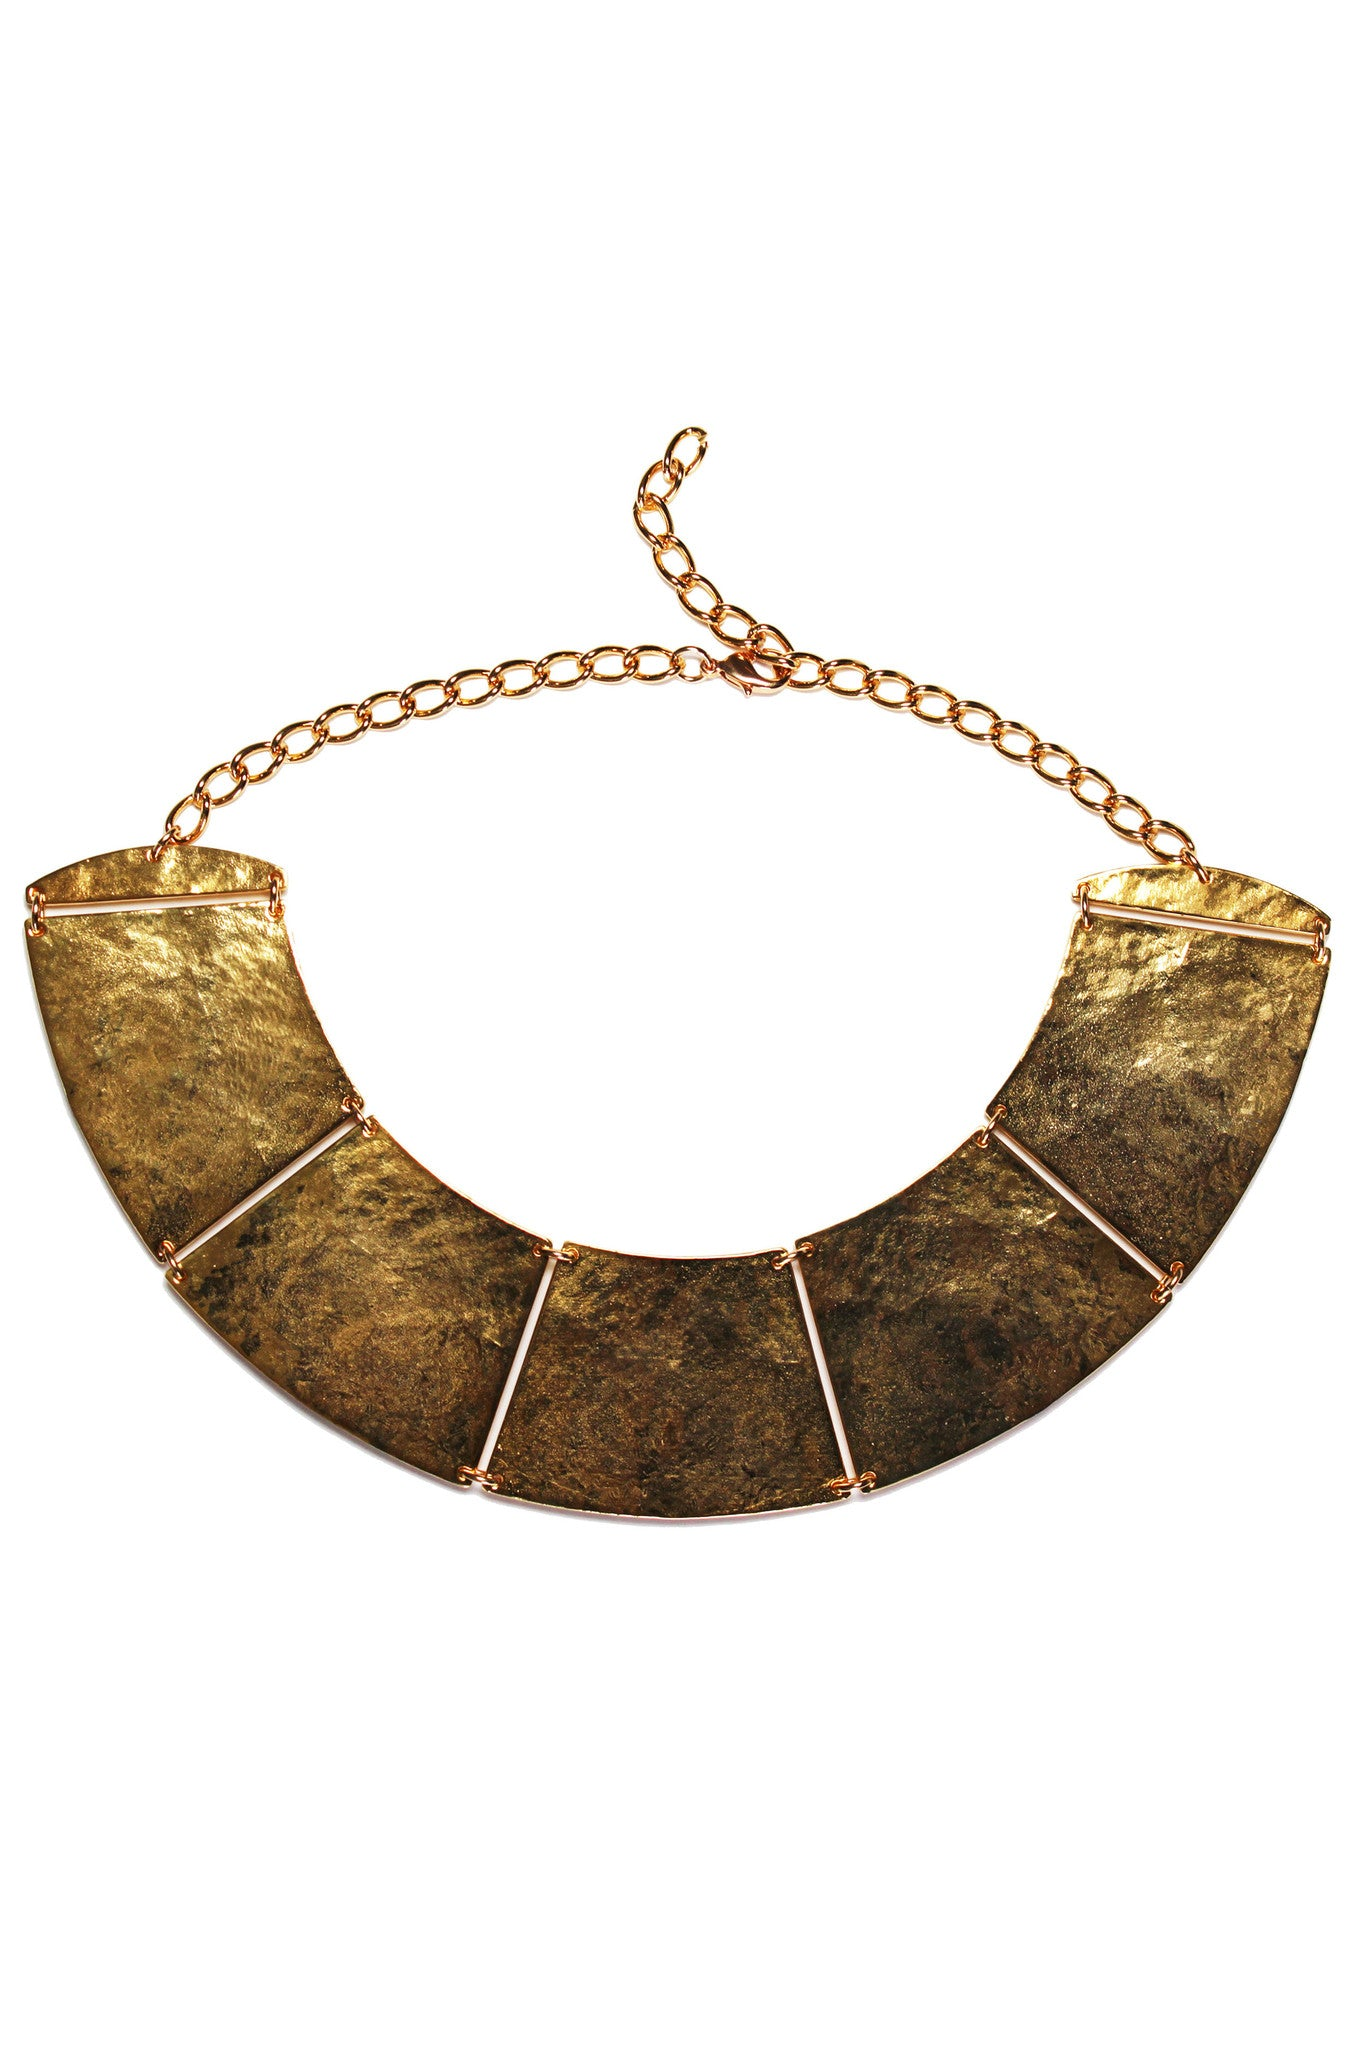 AMMARA NECKLACE